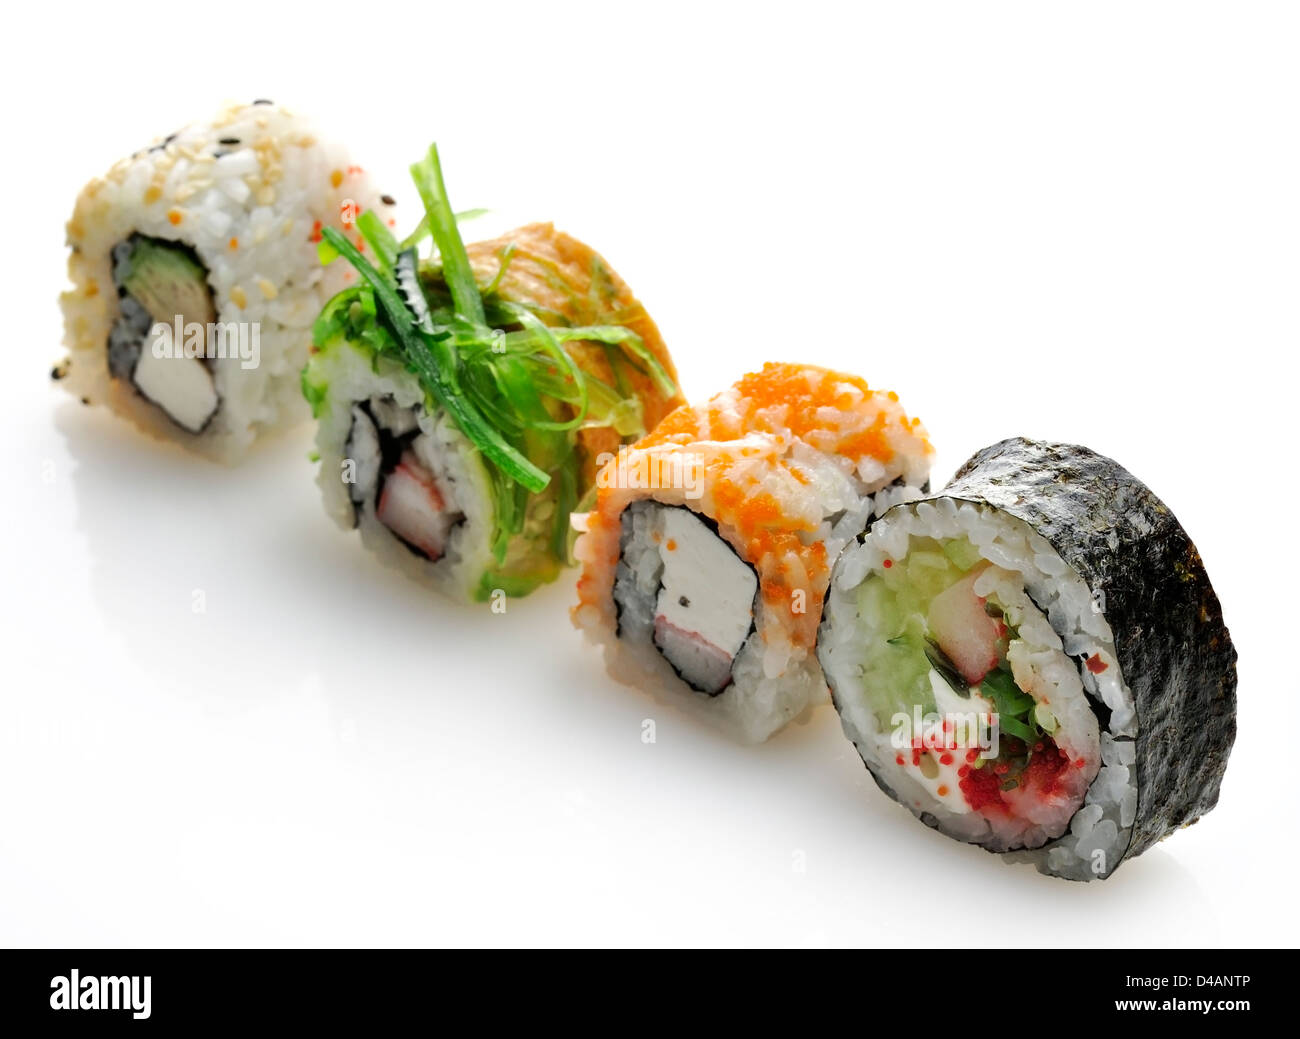 Sushi Assortment On White Background - Stock Image